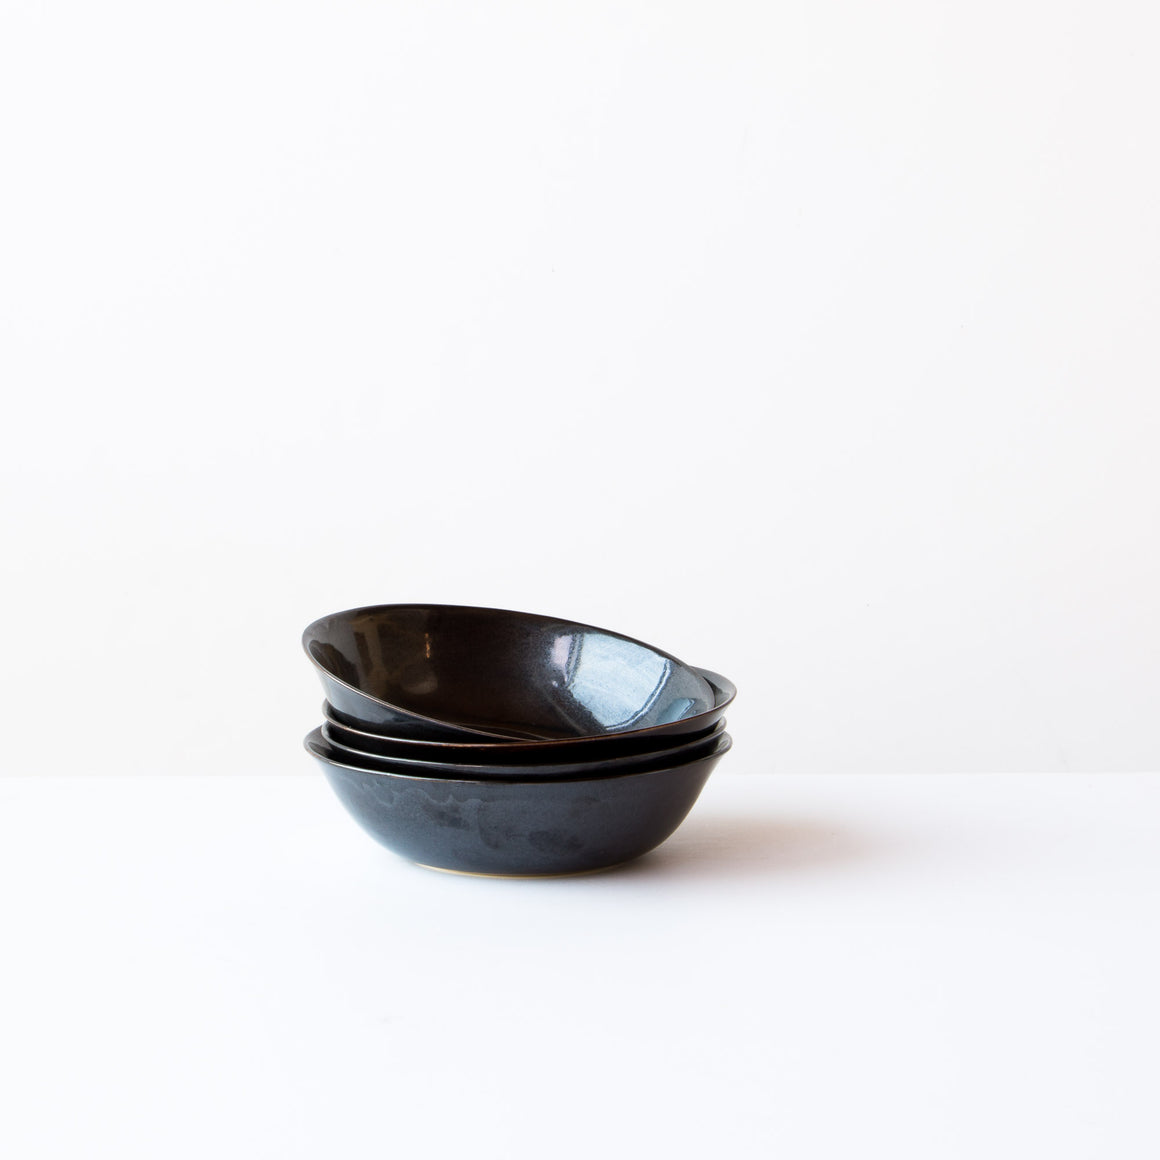 Black Handmade Shallow Porcelain Bowl - Sold by Chic & Basta